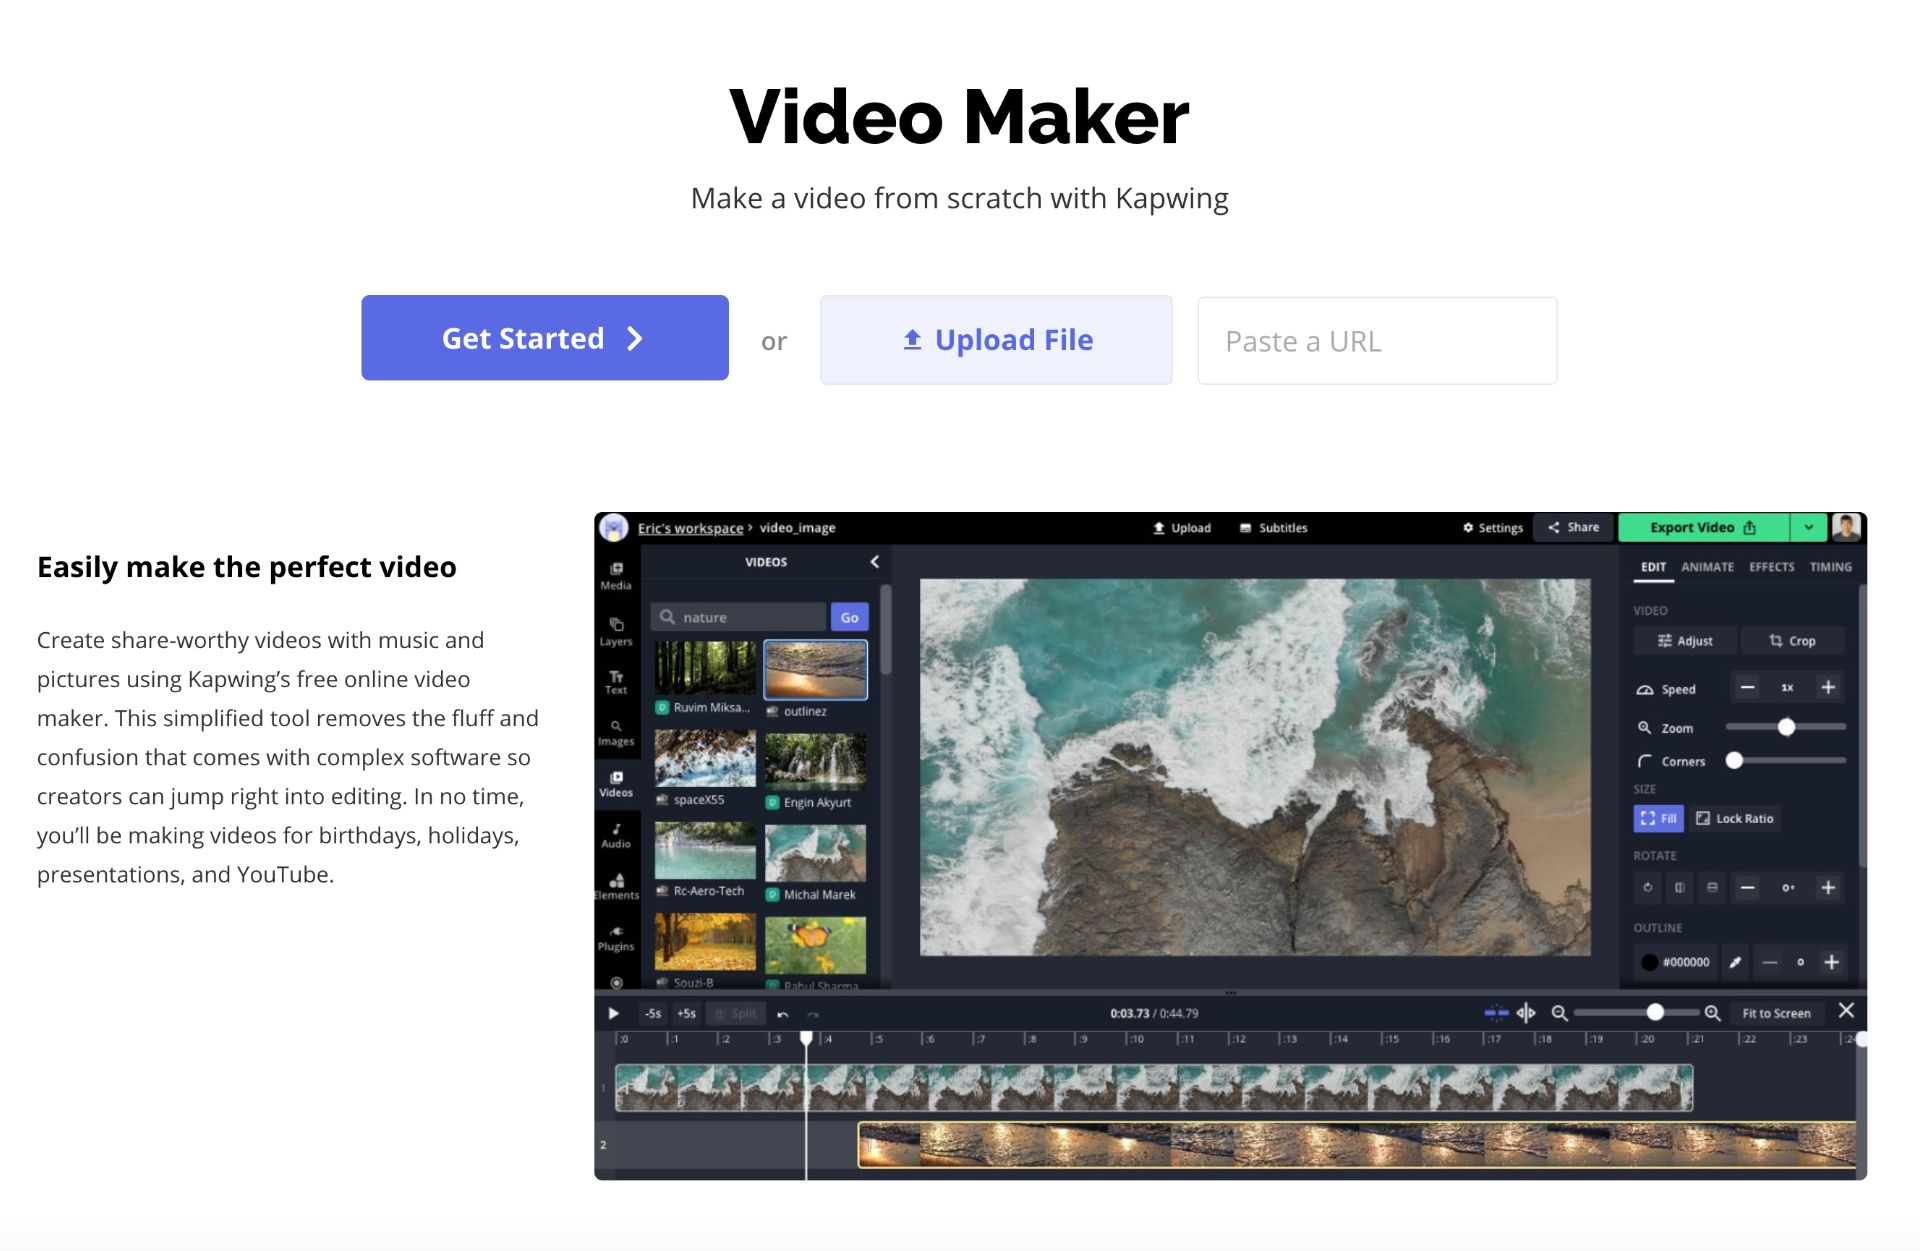 A screenshot showing how to upload photos and videos to Kapwing.